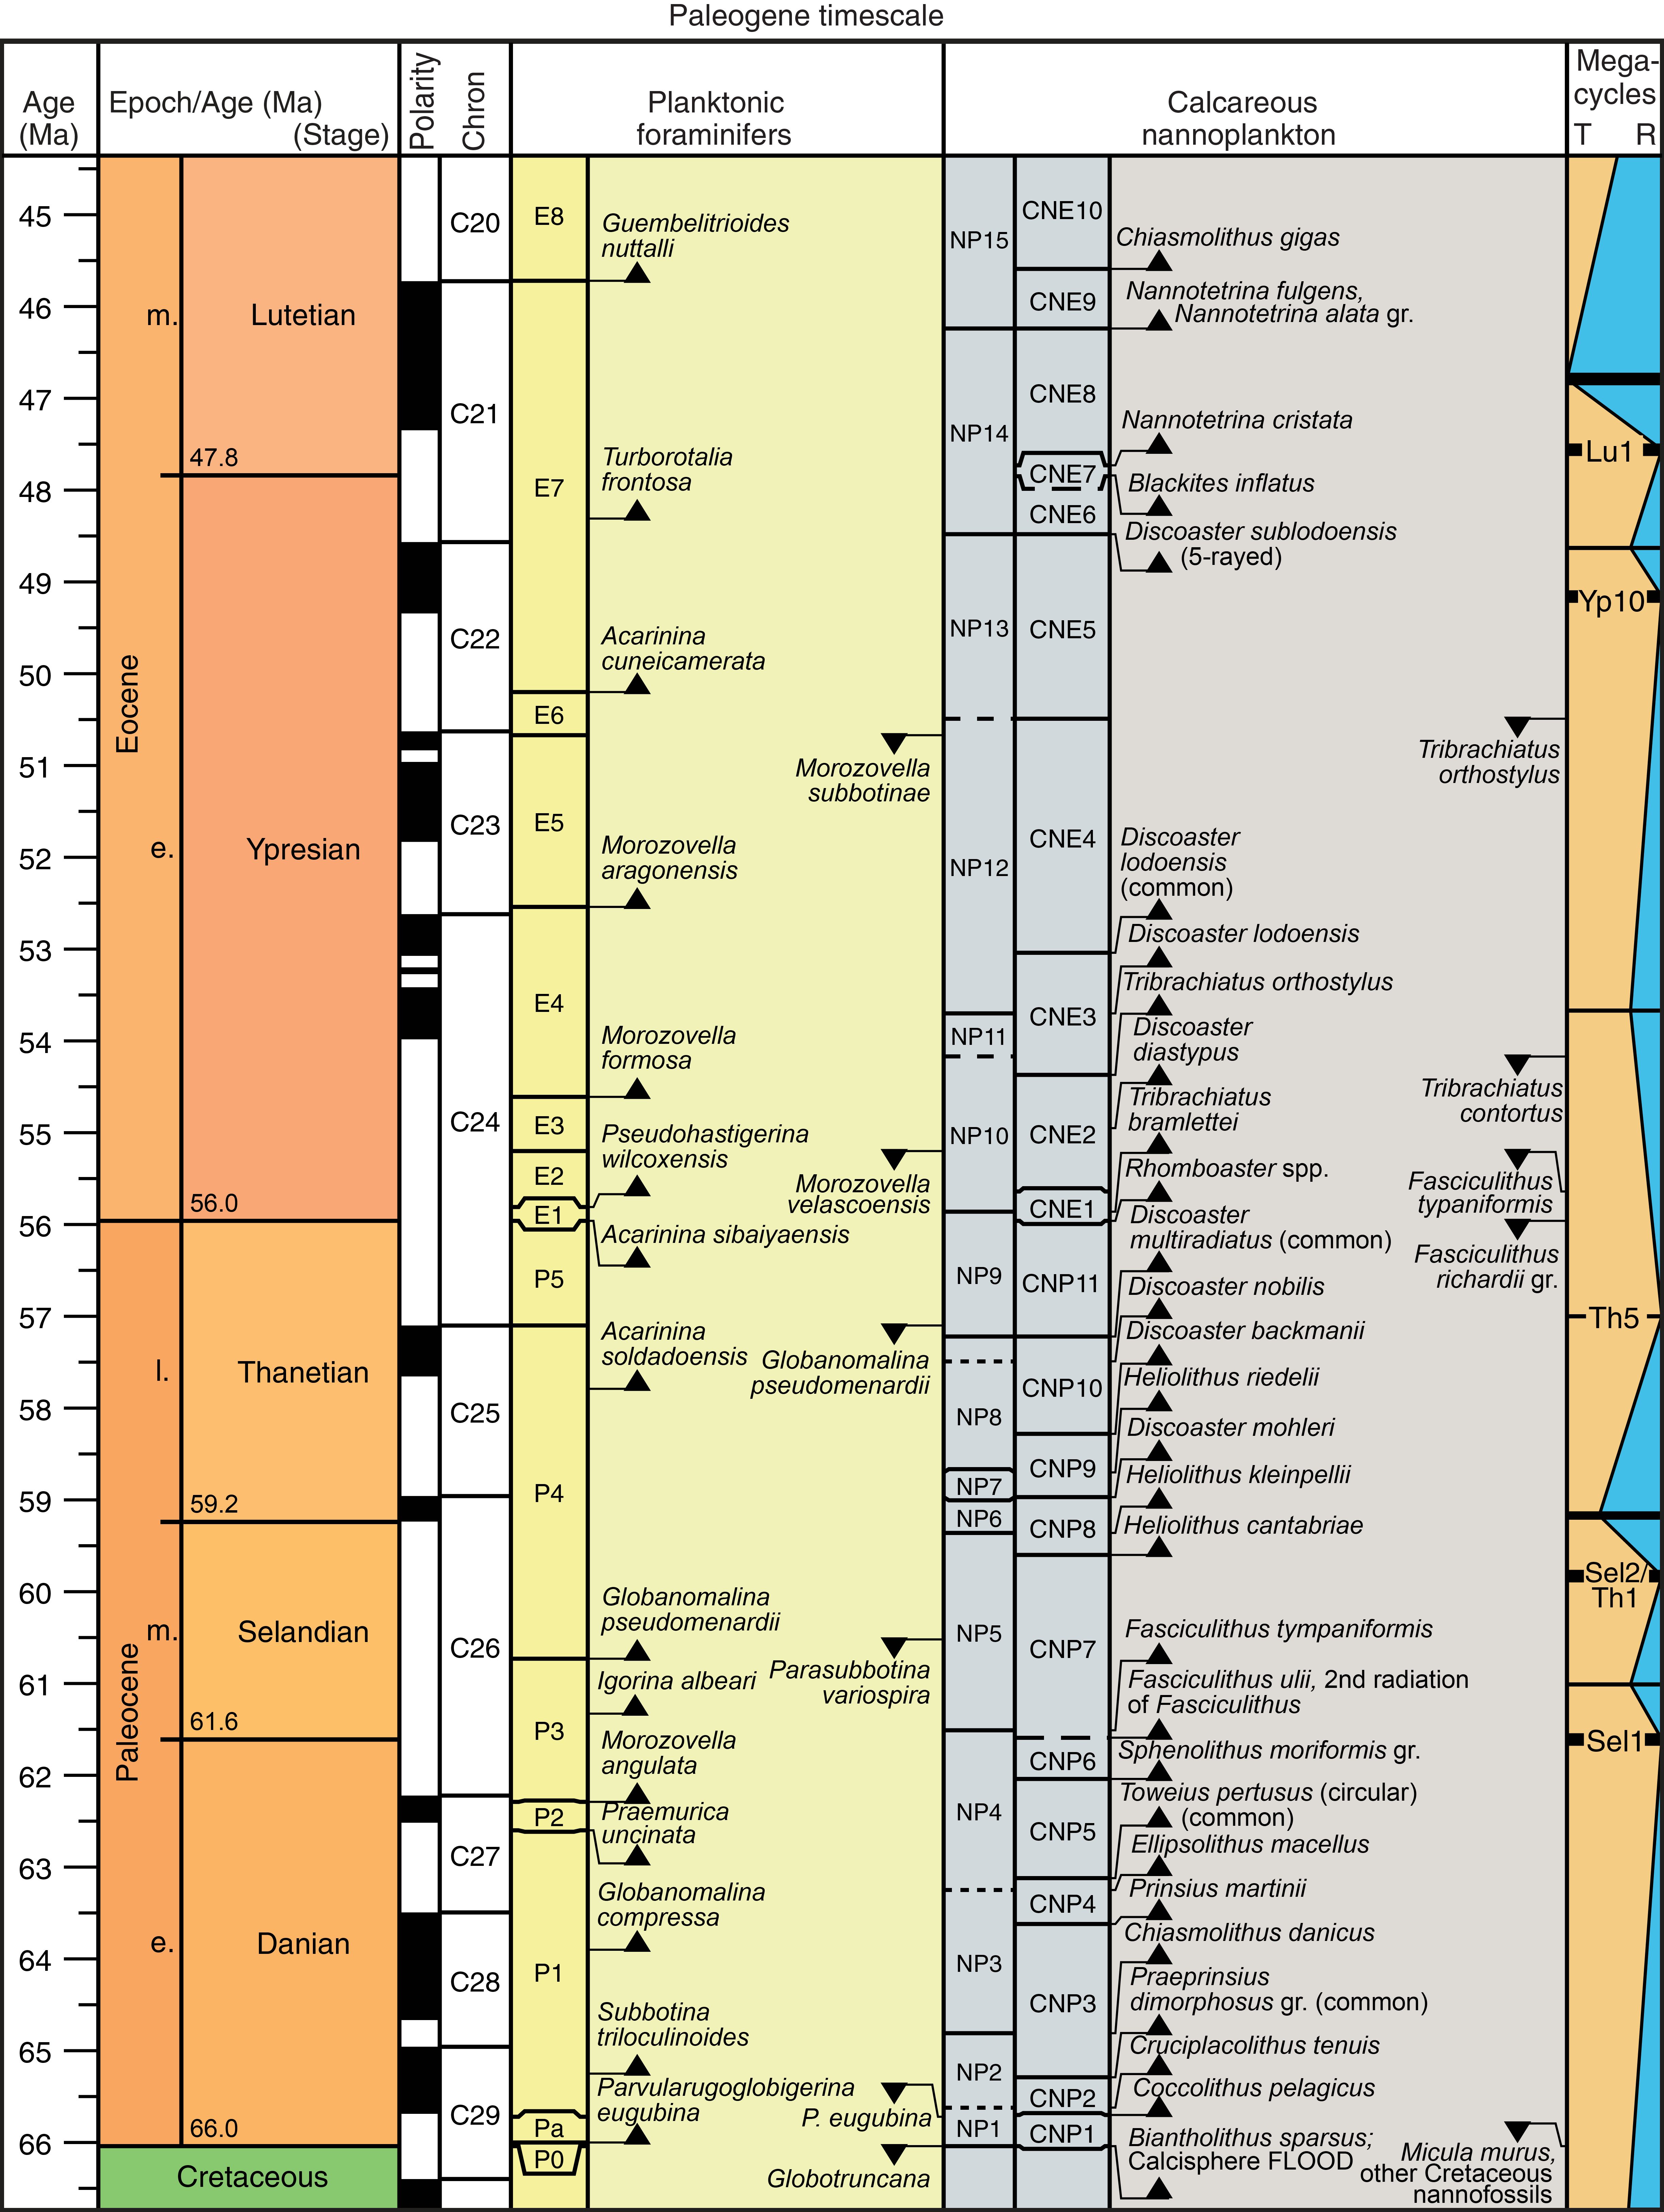 IODP Publications • Volume 367/368 expedition reports